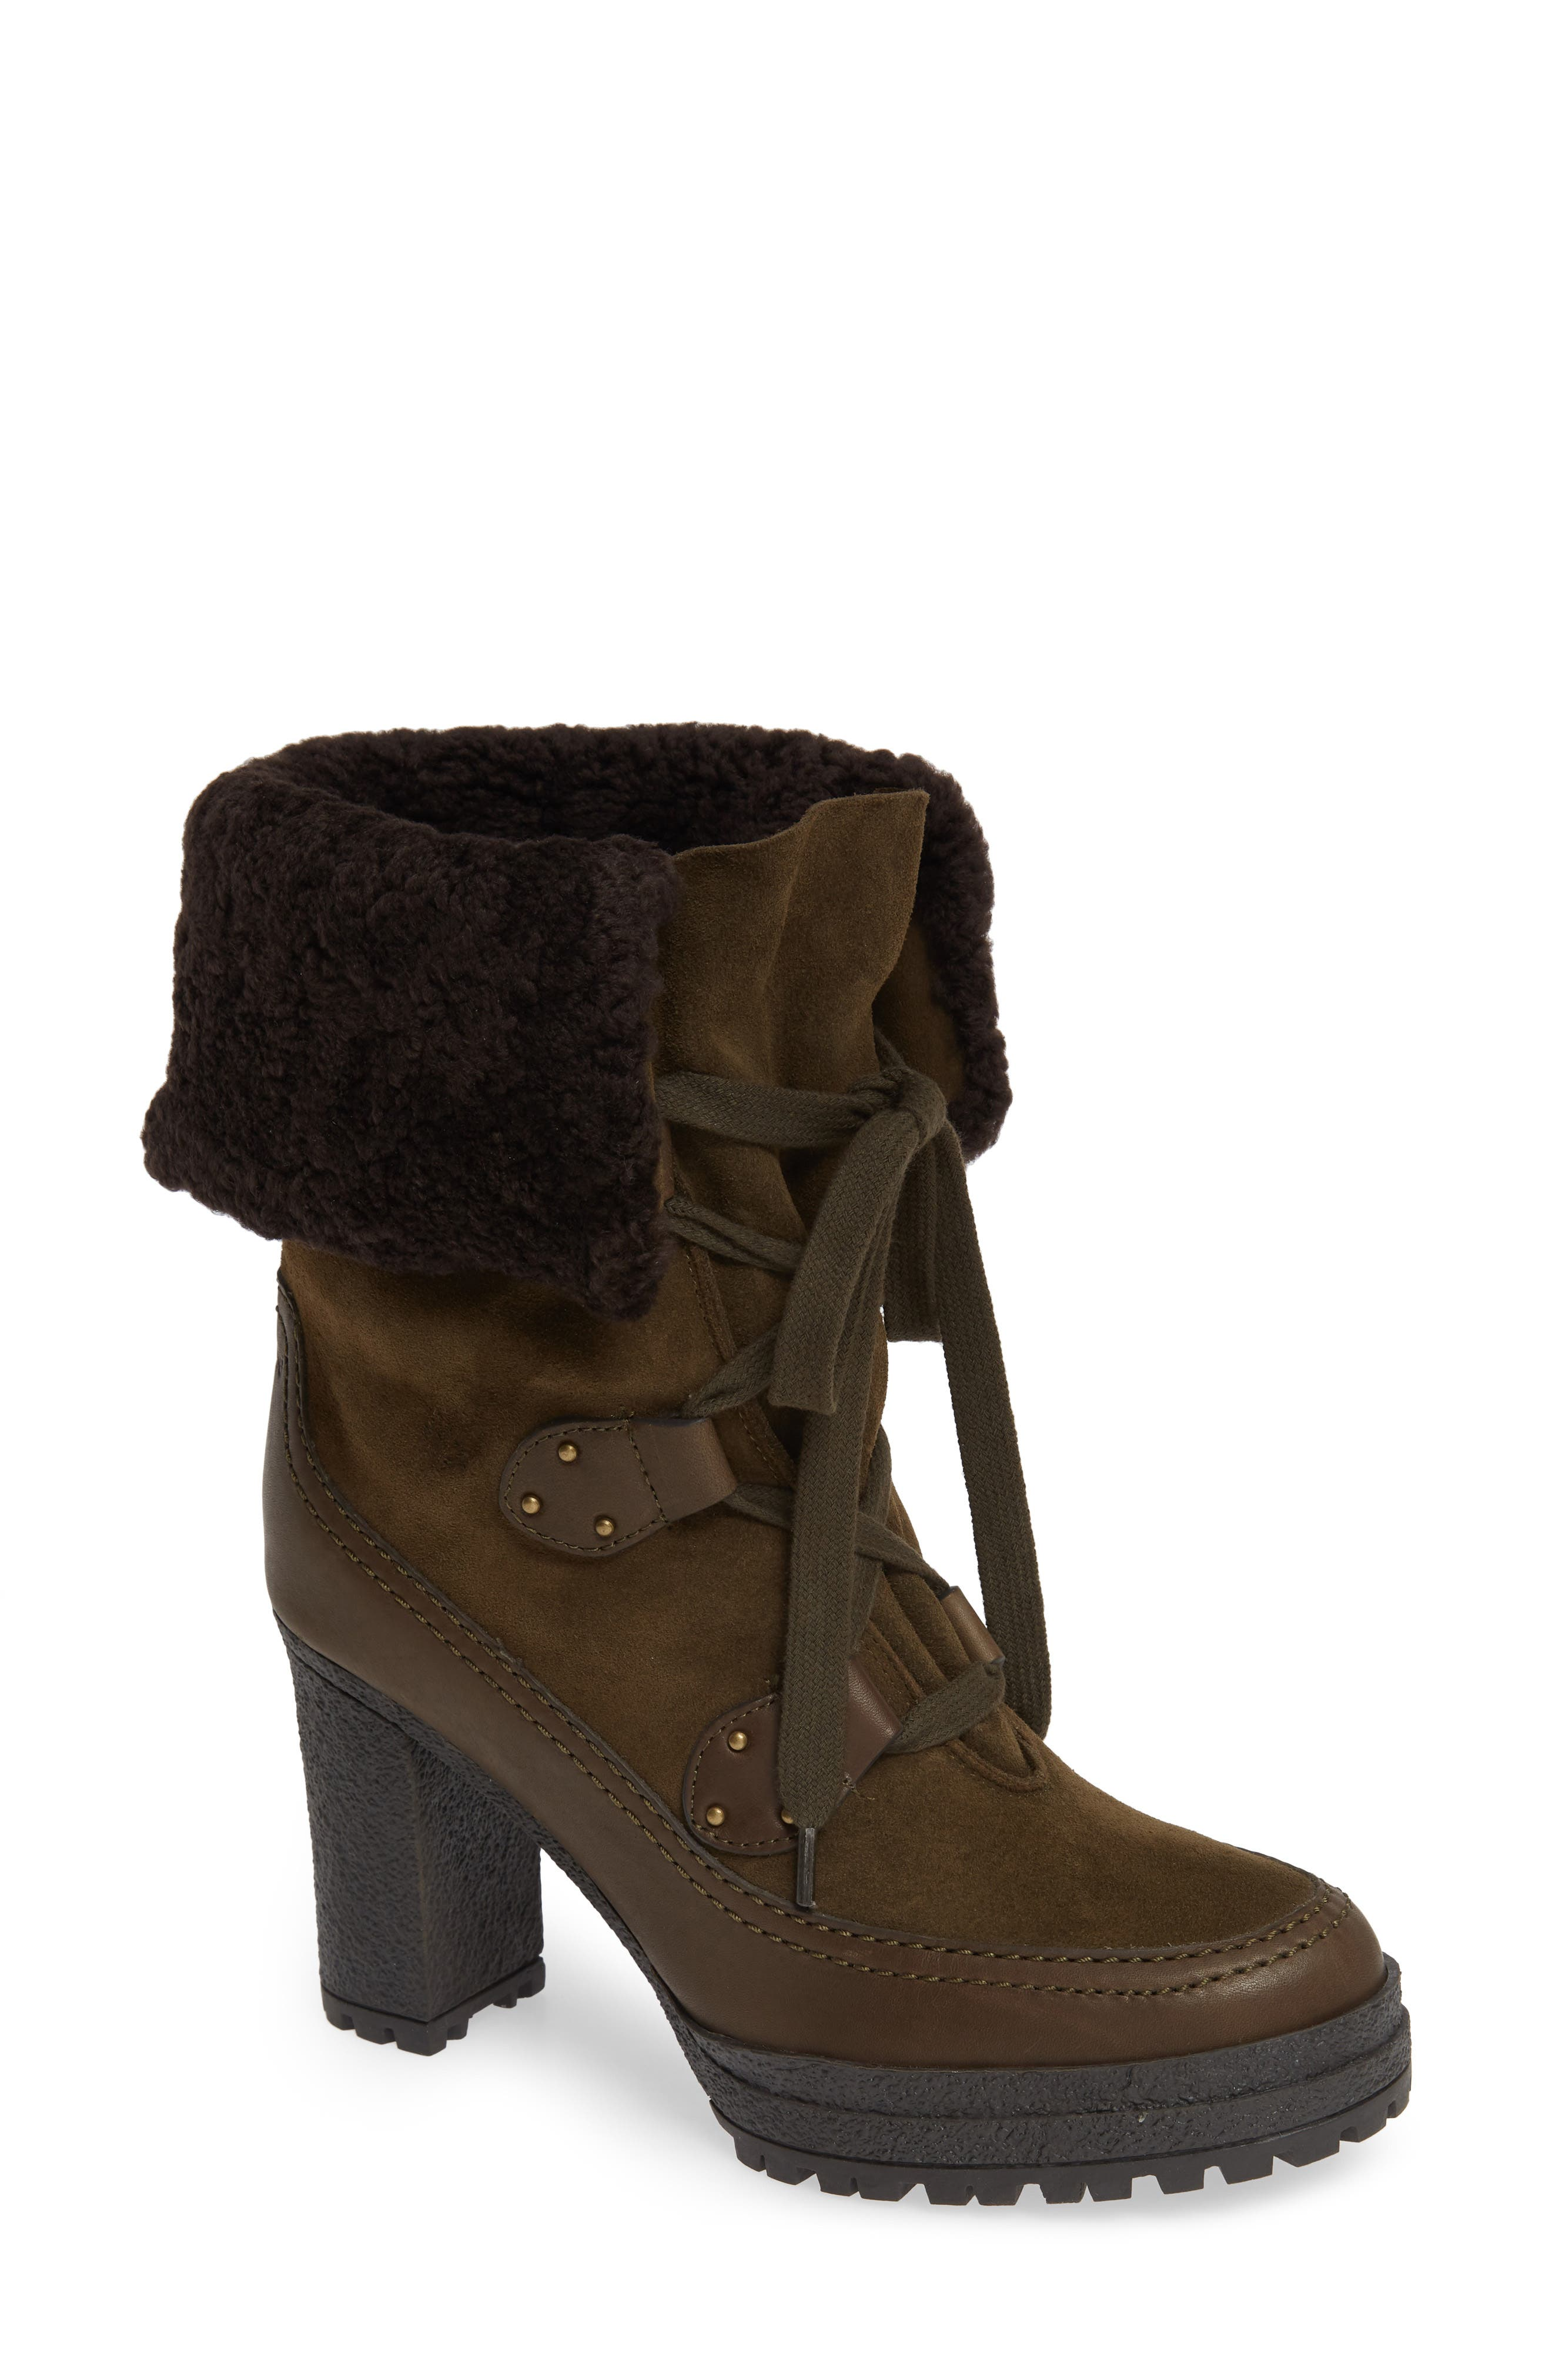 SEE BY CHLOÉ,                             Verena Shearling Cuff Bootie,                             Main thumbnail 1, color,                             300